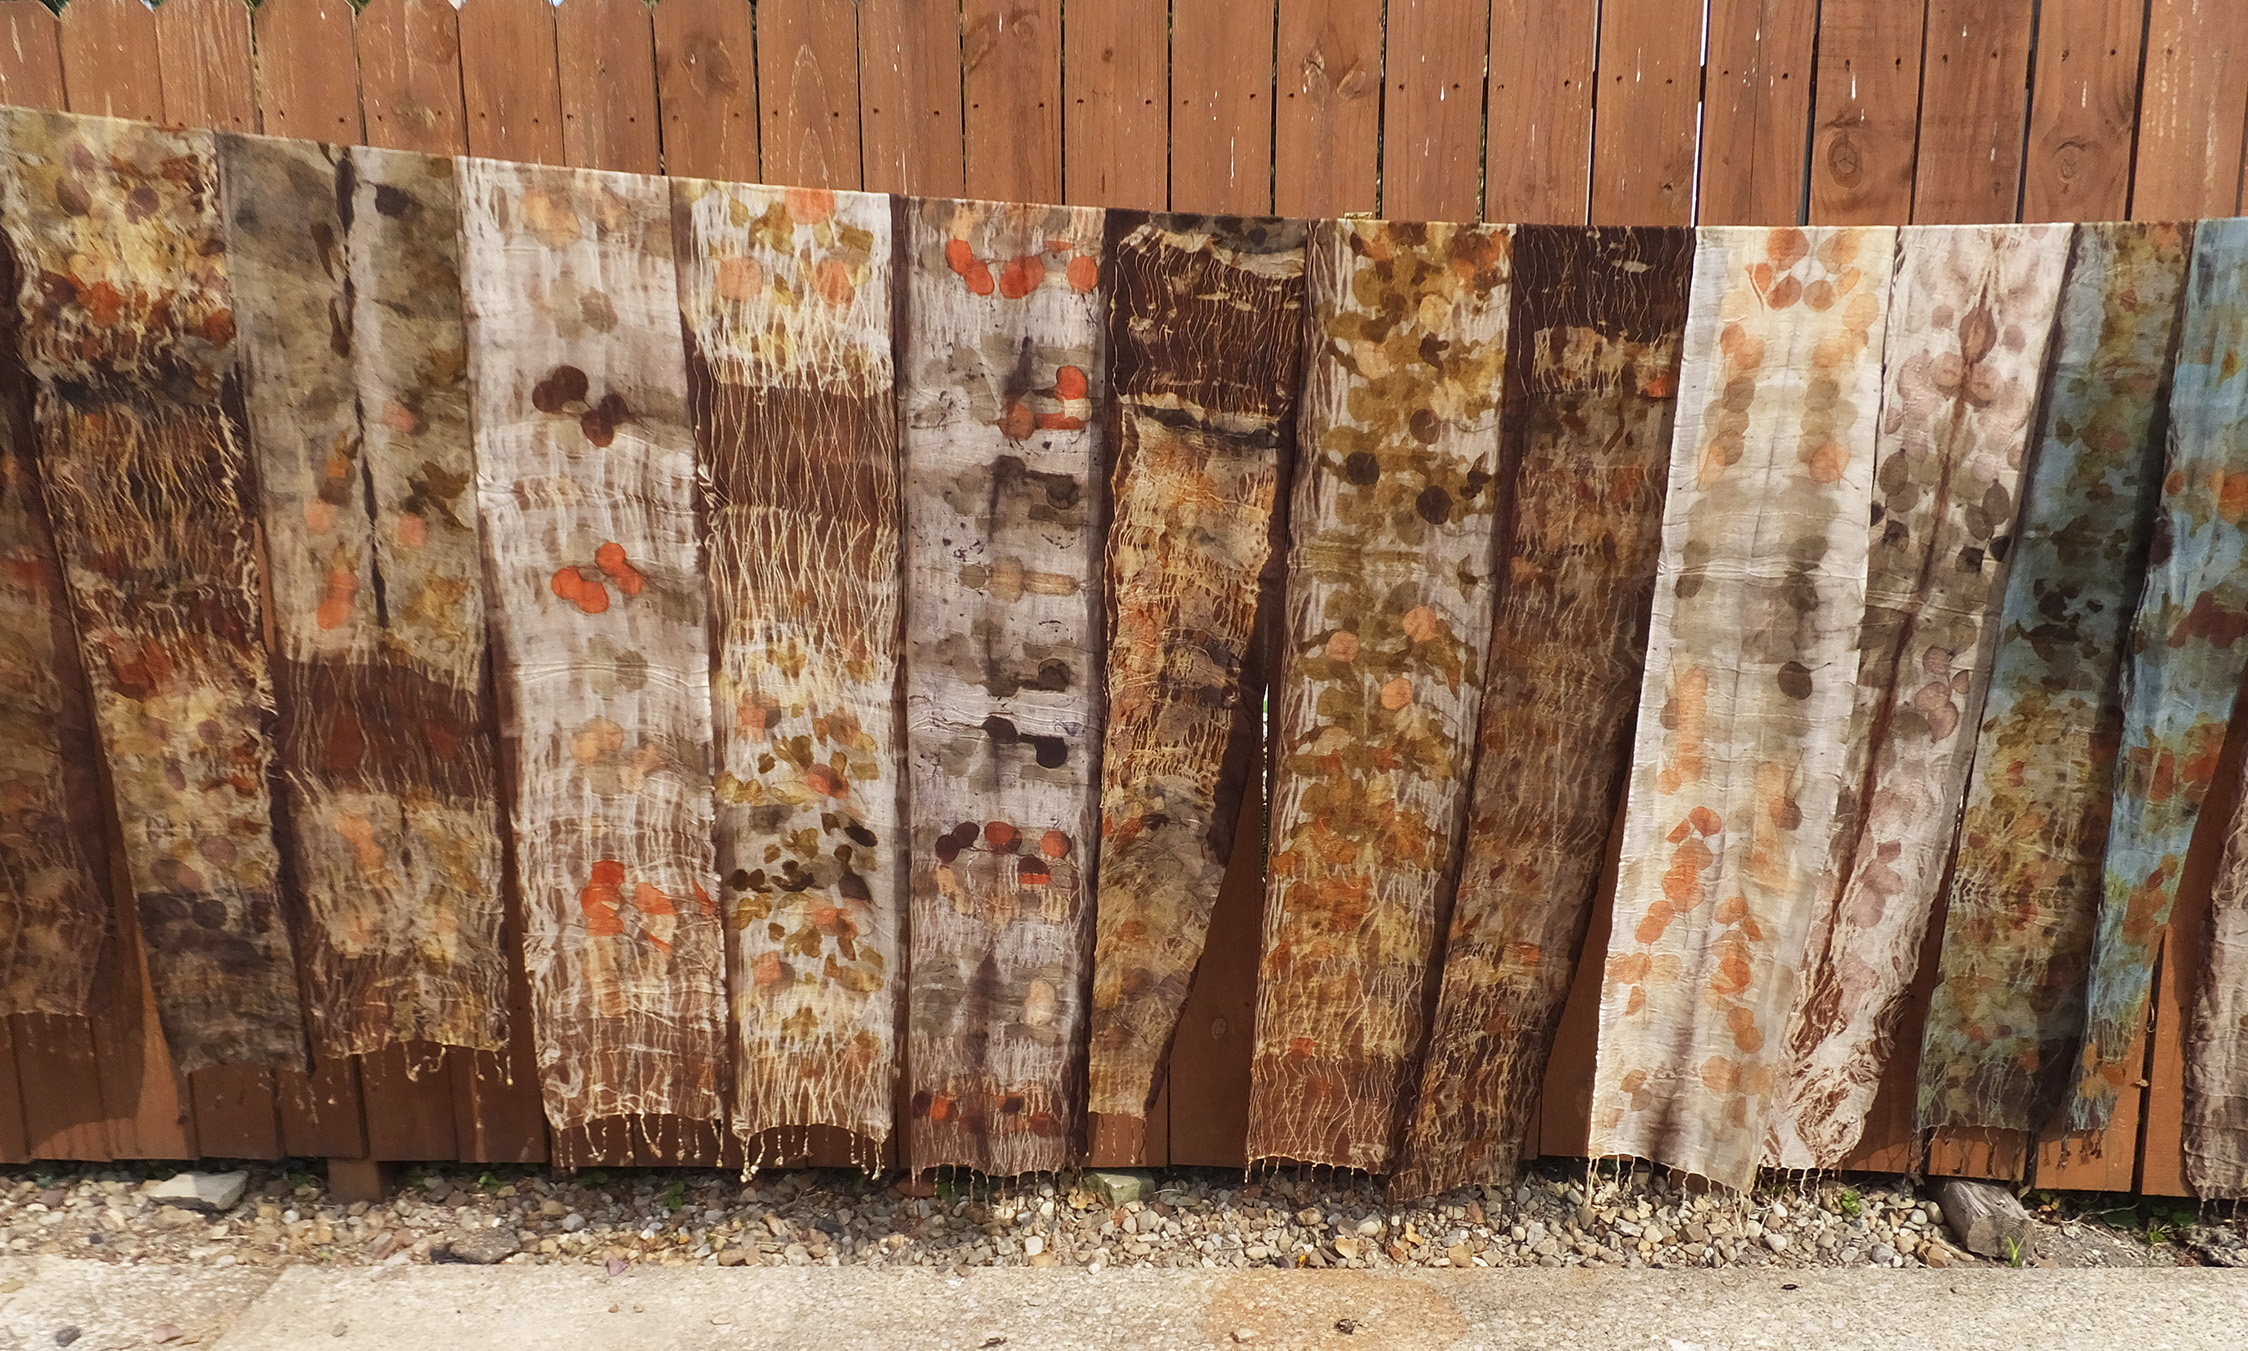 100% Wool scarves, eco printed using leaves and black walnut. Scarf on far right is over-dyed in indigo.